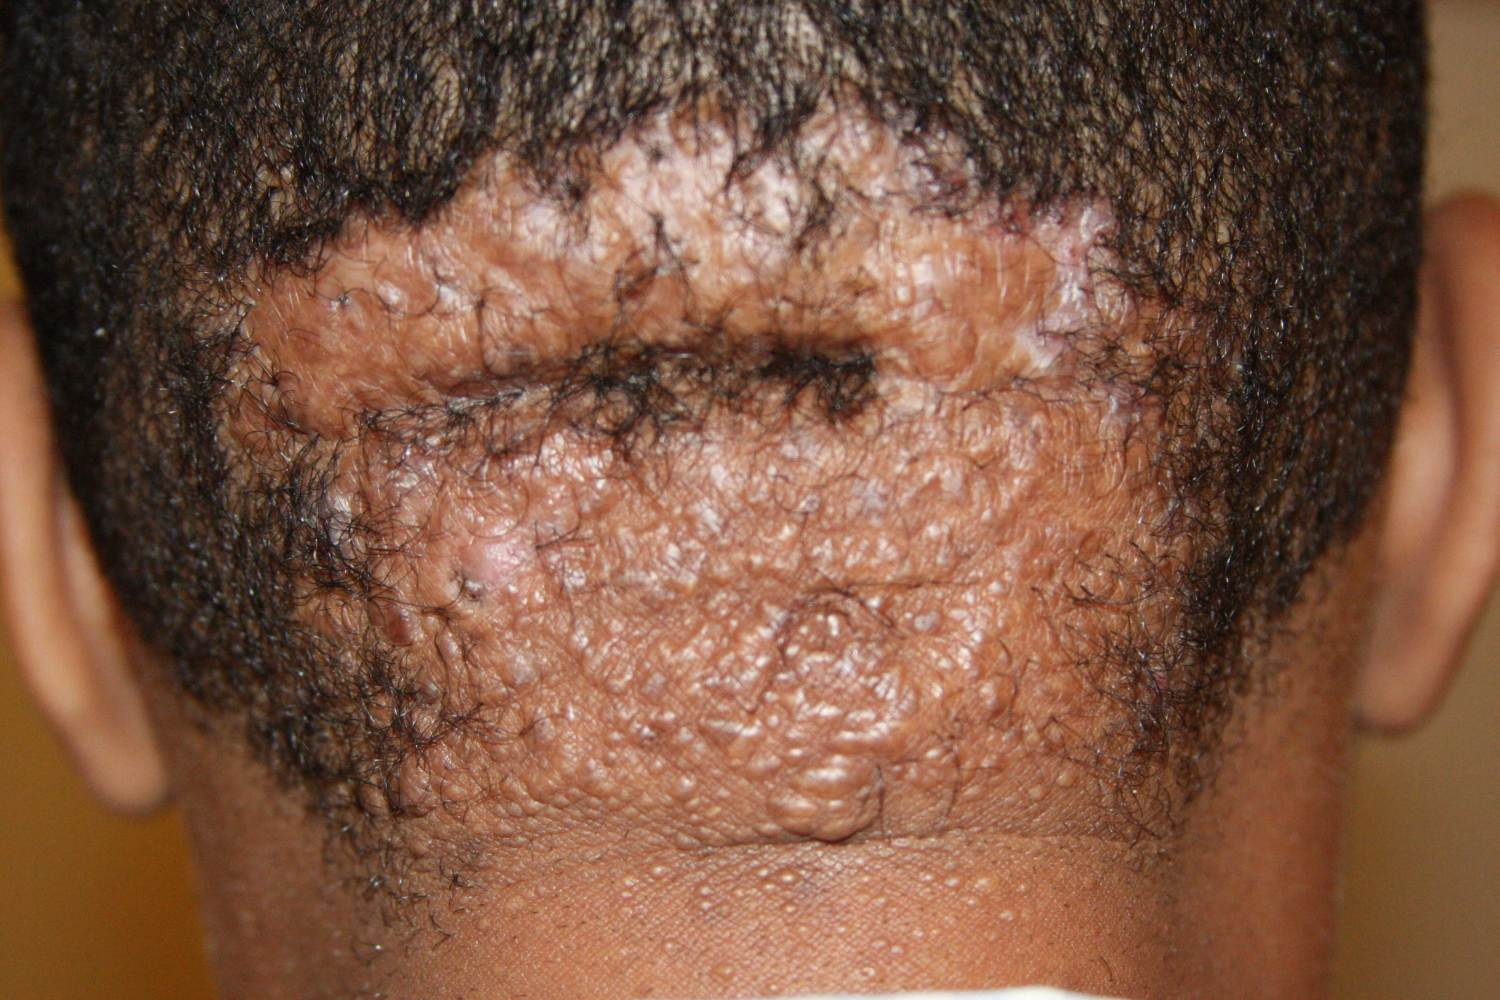 Widespread scalp involvement with keloid